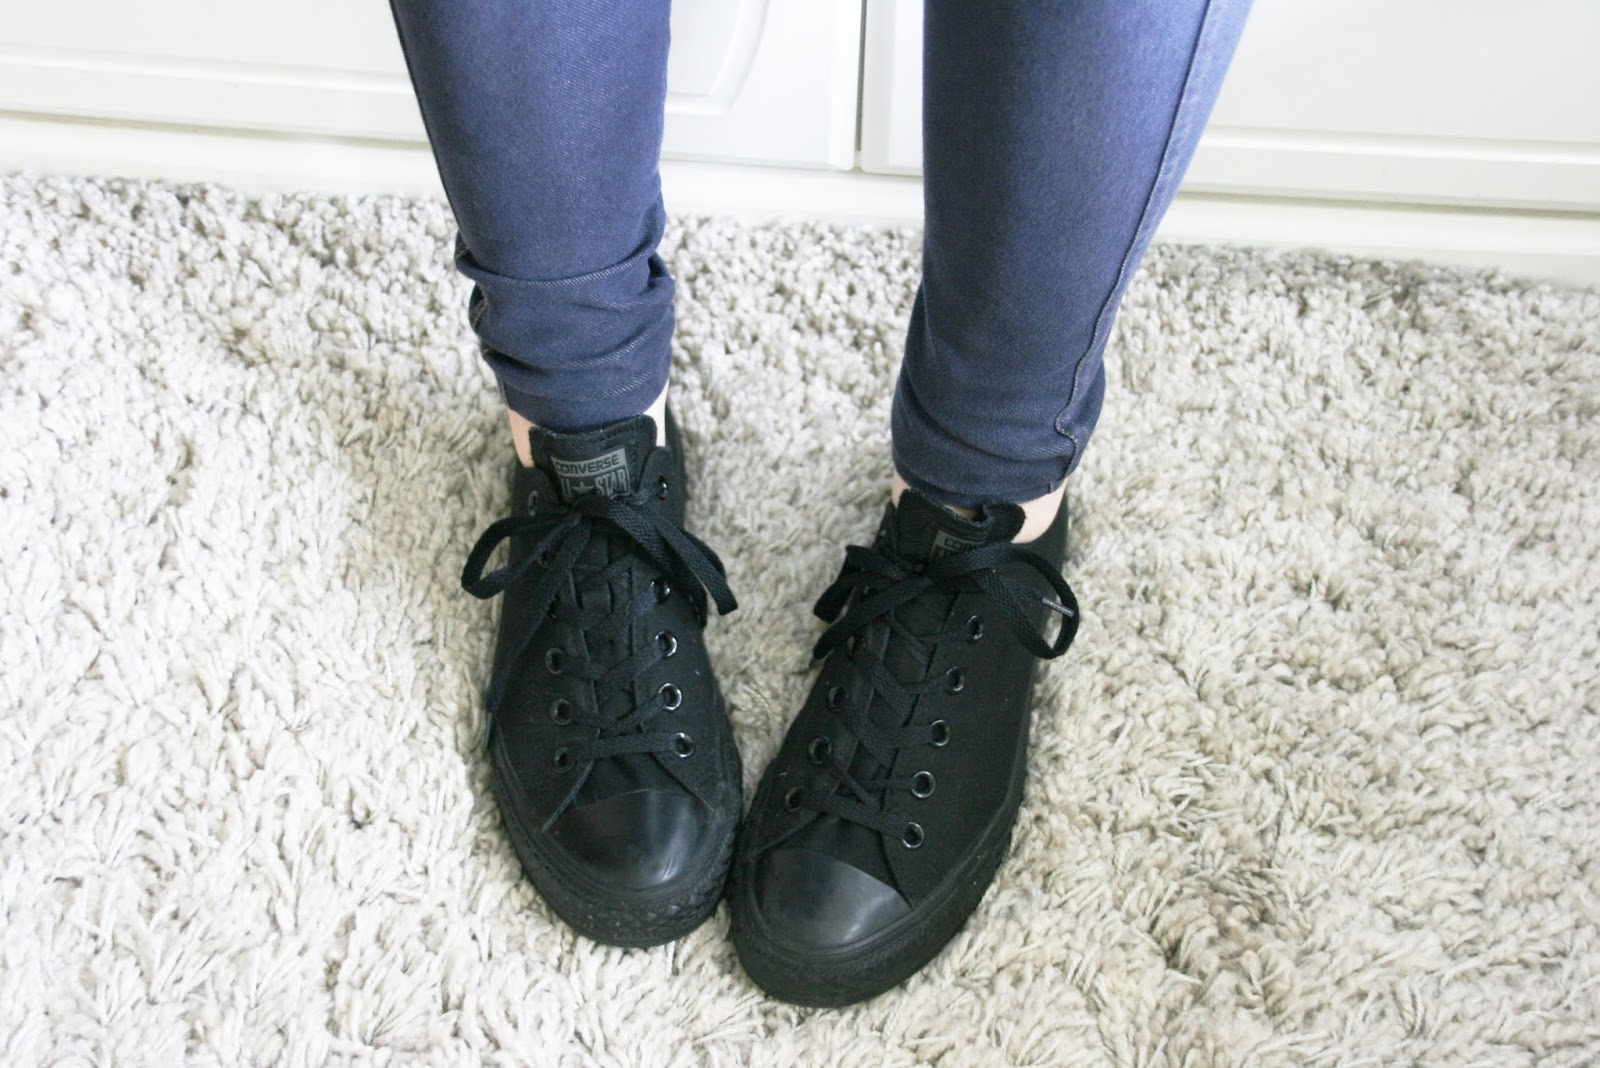 2019 year style- All converse black on feet pictures